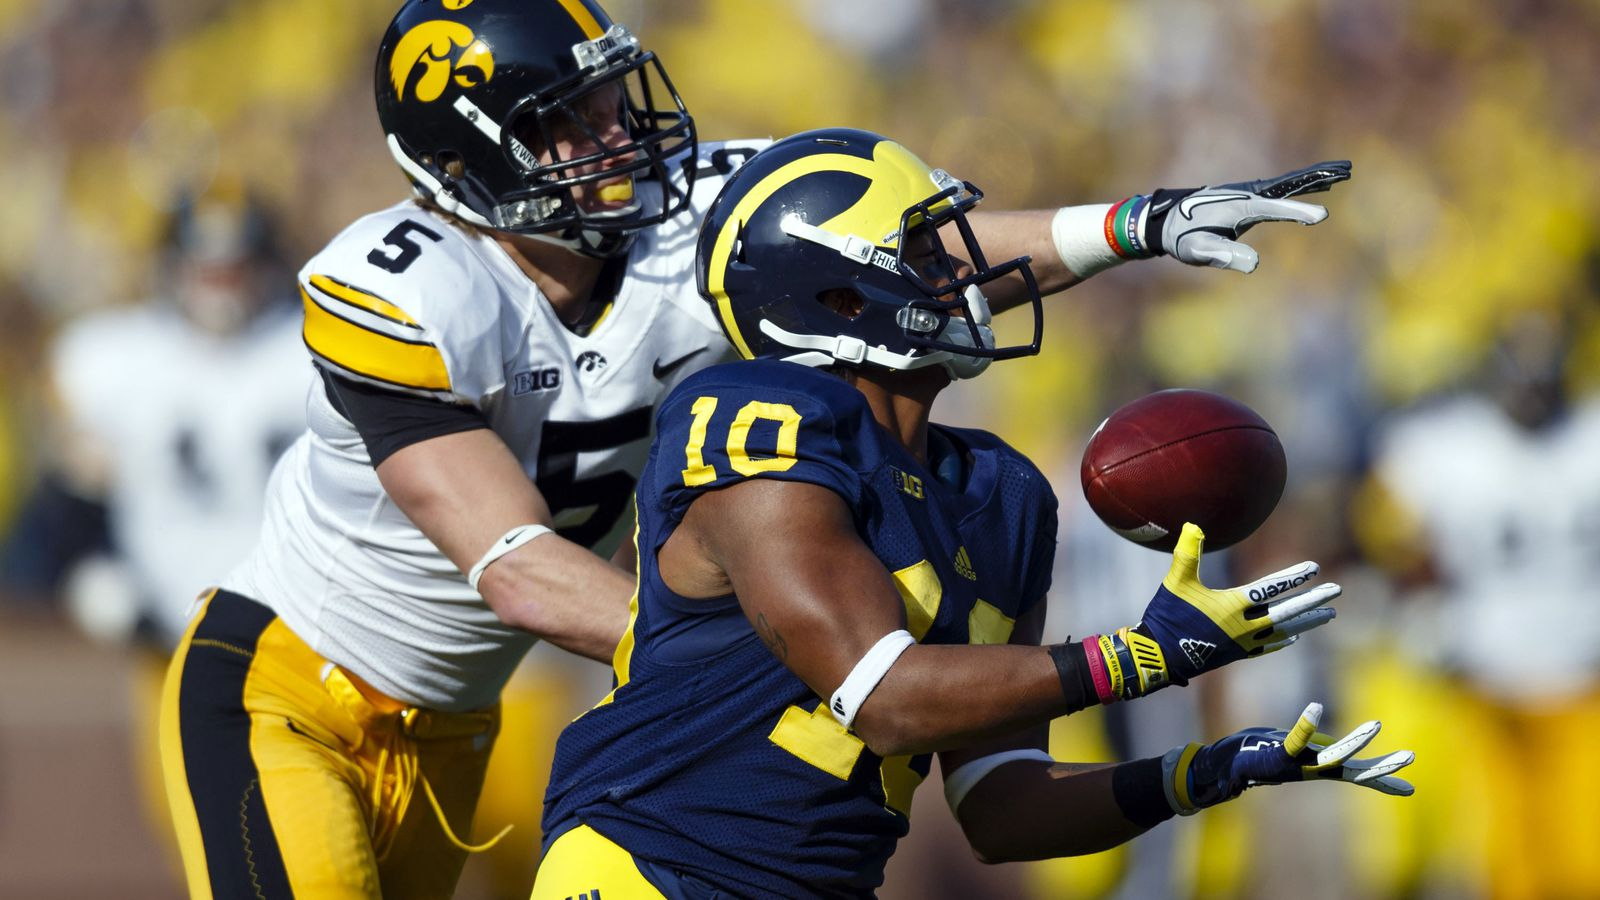 Inside Michigan's Playbook Gets Back to Basics